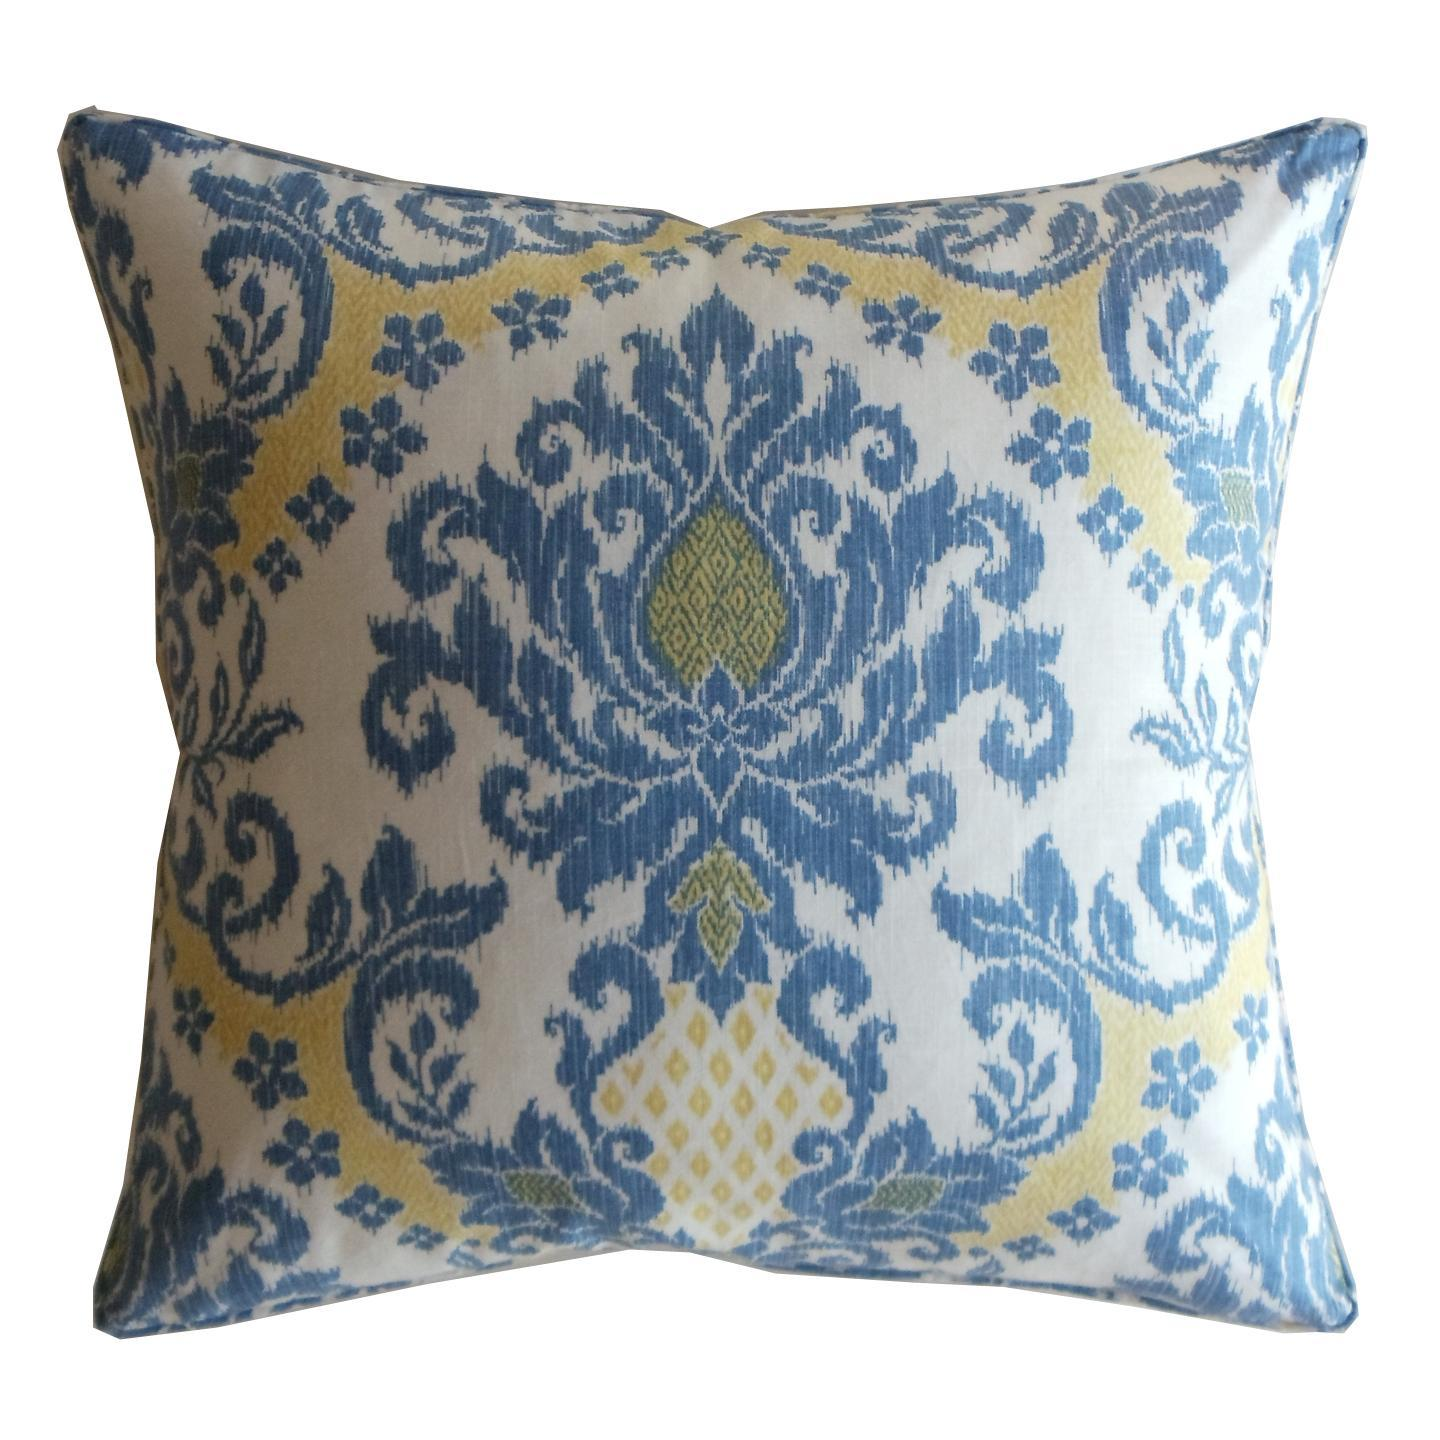 Blue Linen Ikat Decorative Pillow